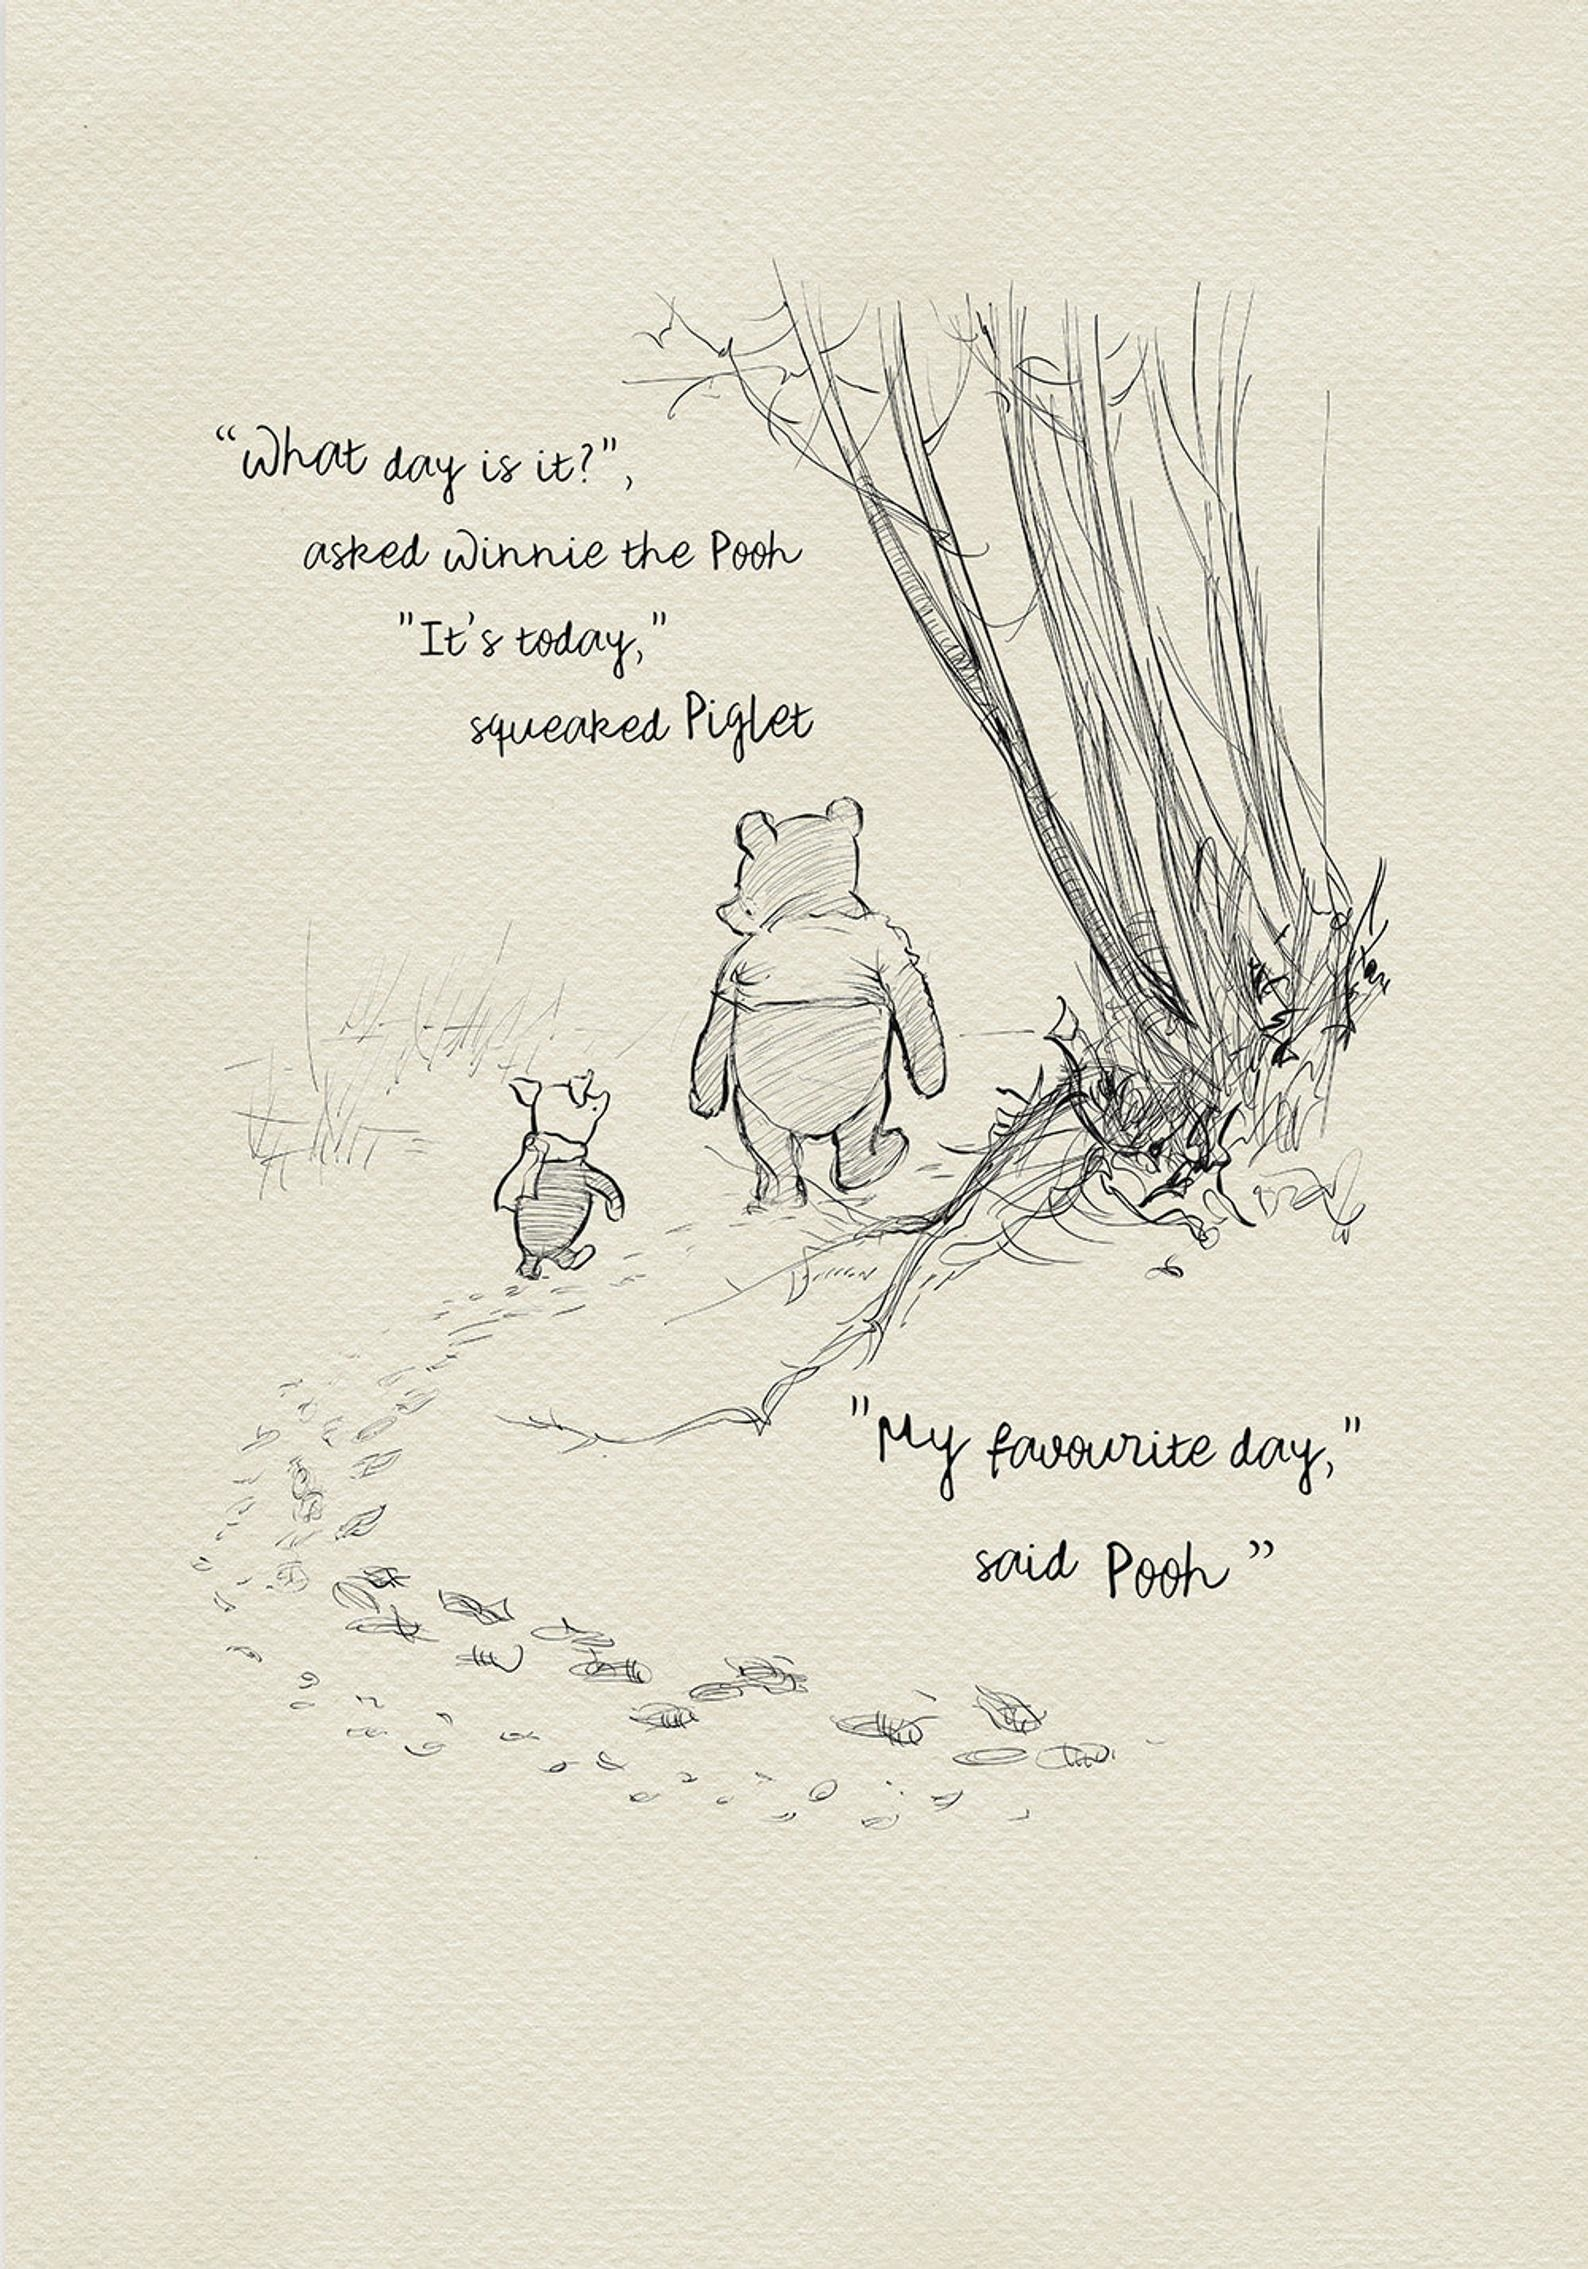 the print, which shows Pooh and Piglet walking in the woods